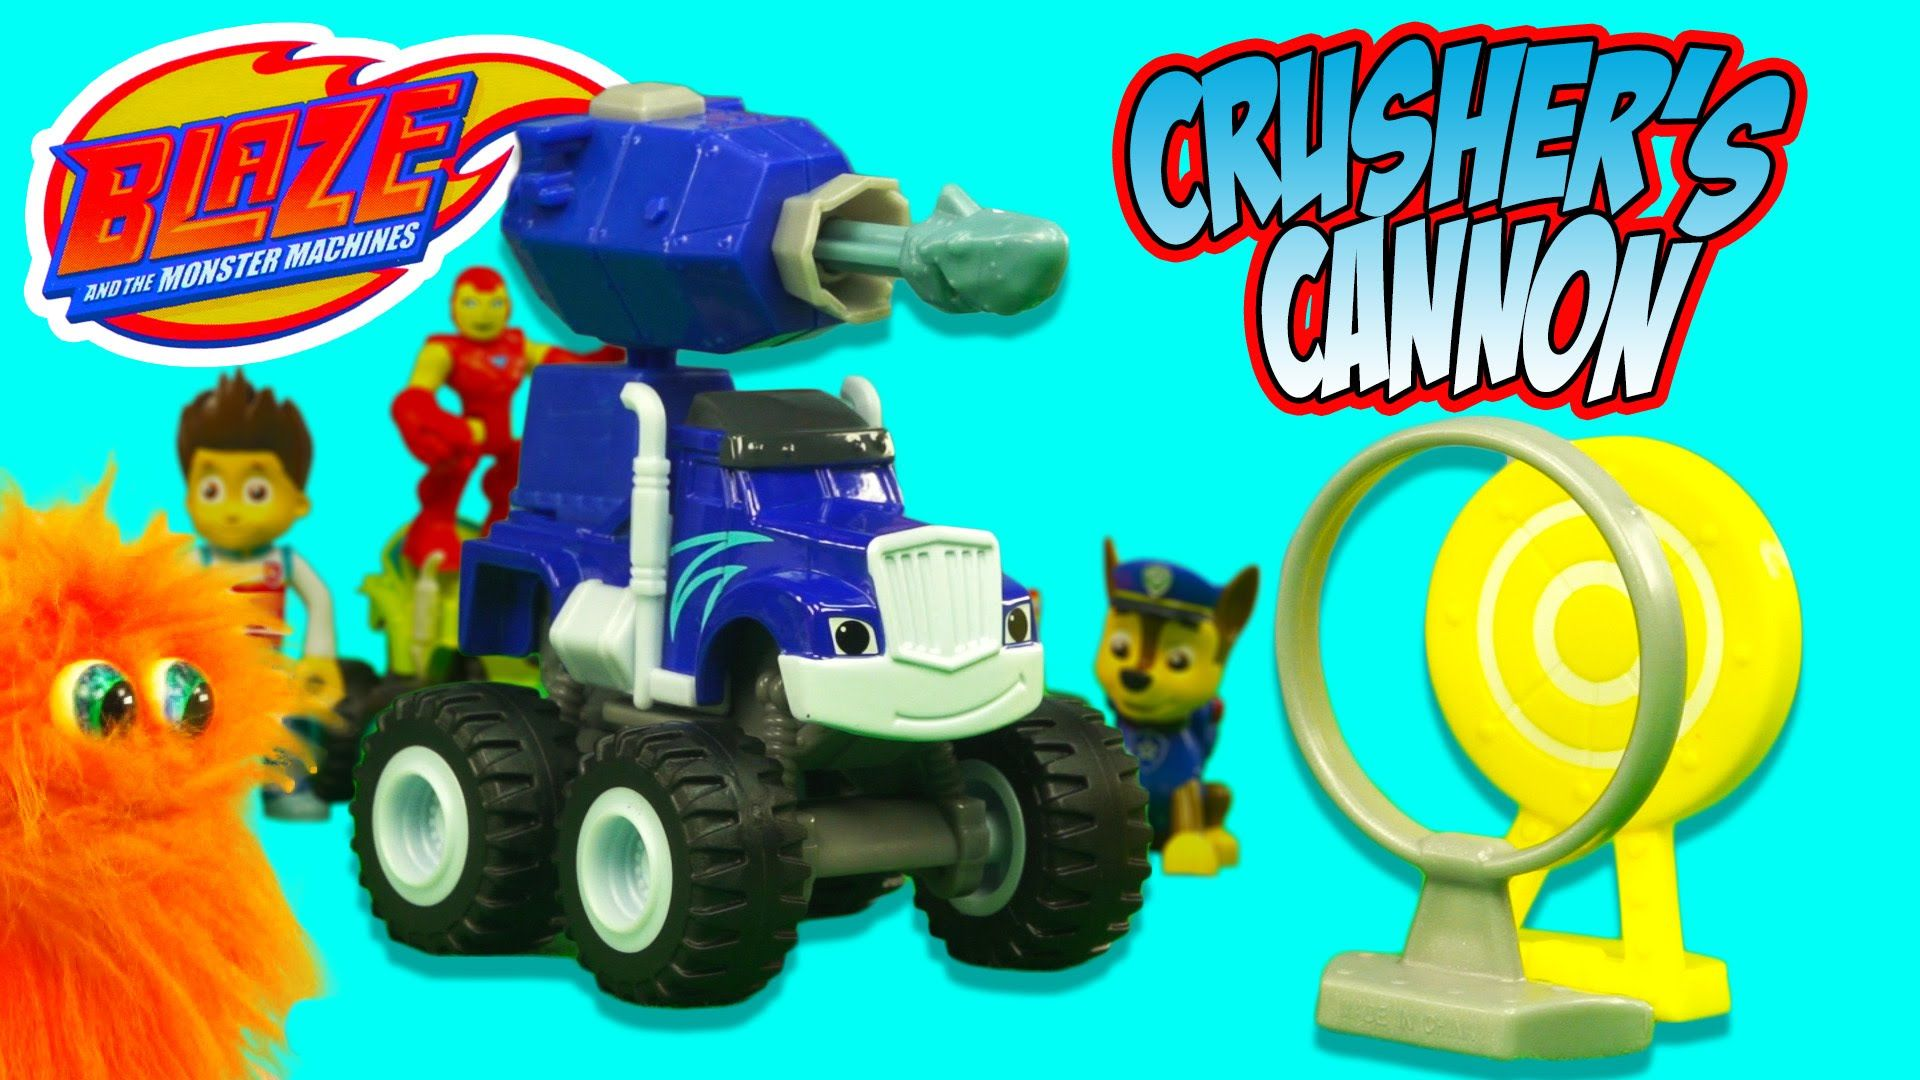 Blaze And The Monster Machines Cannon Blast Crusher Toy Review And